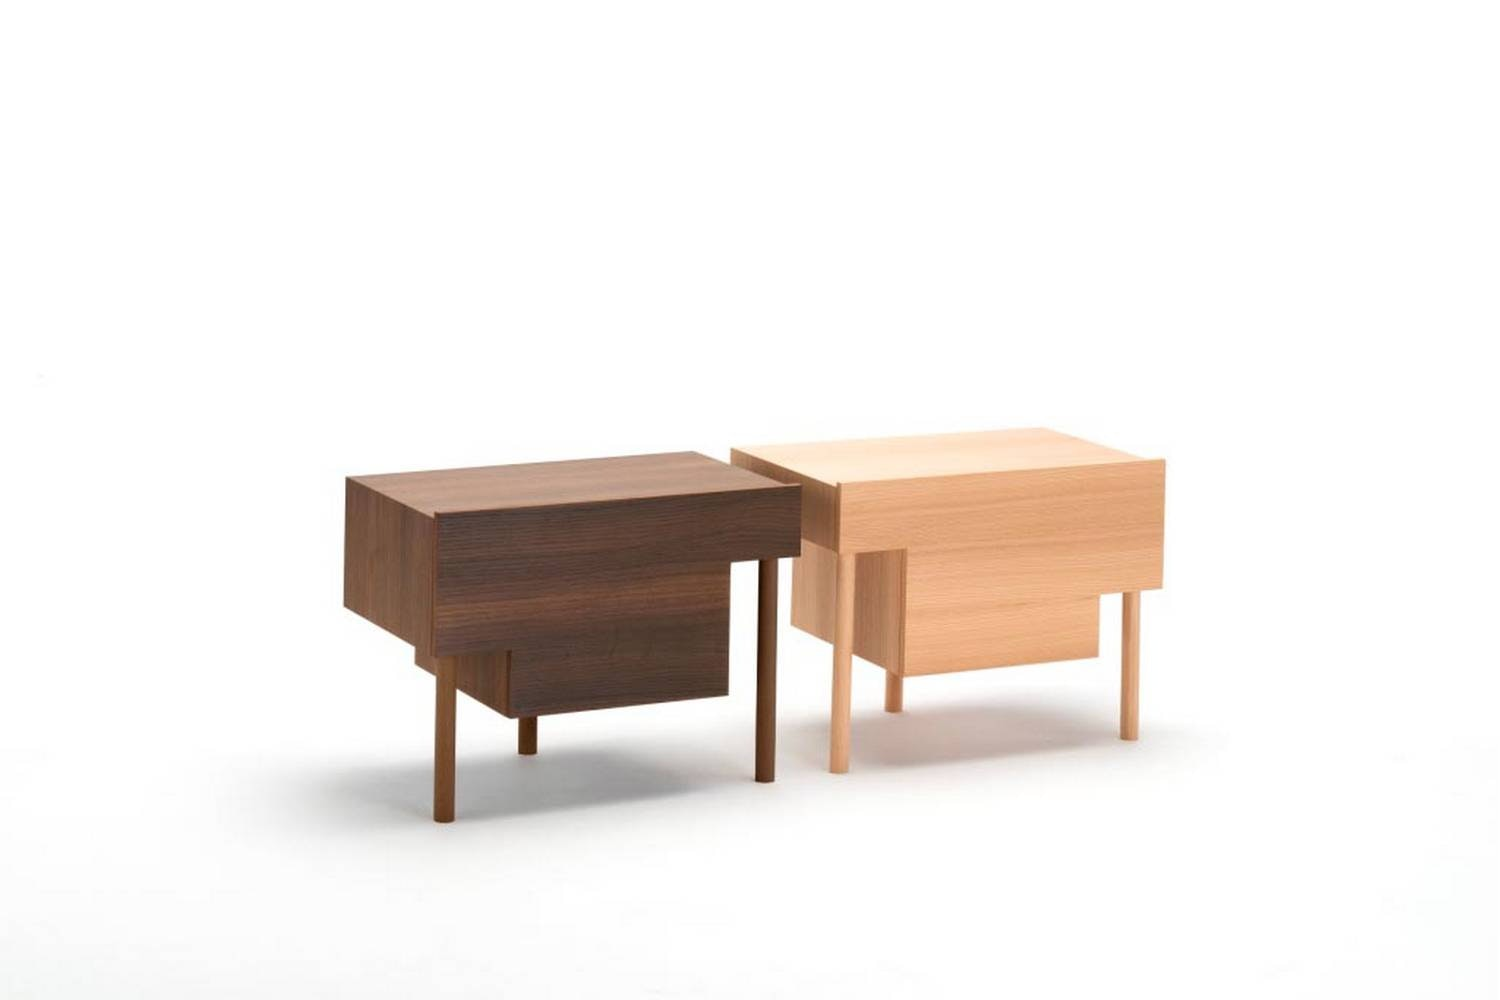 Stilt Bedside Table by Marco Guazzini for Living Divani